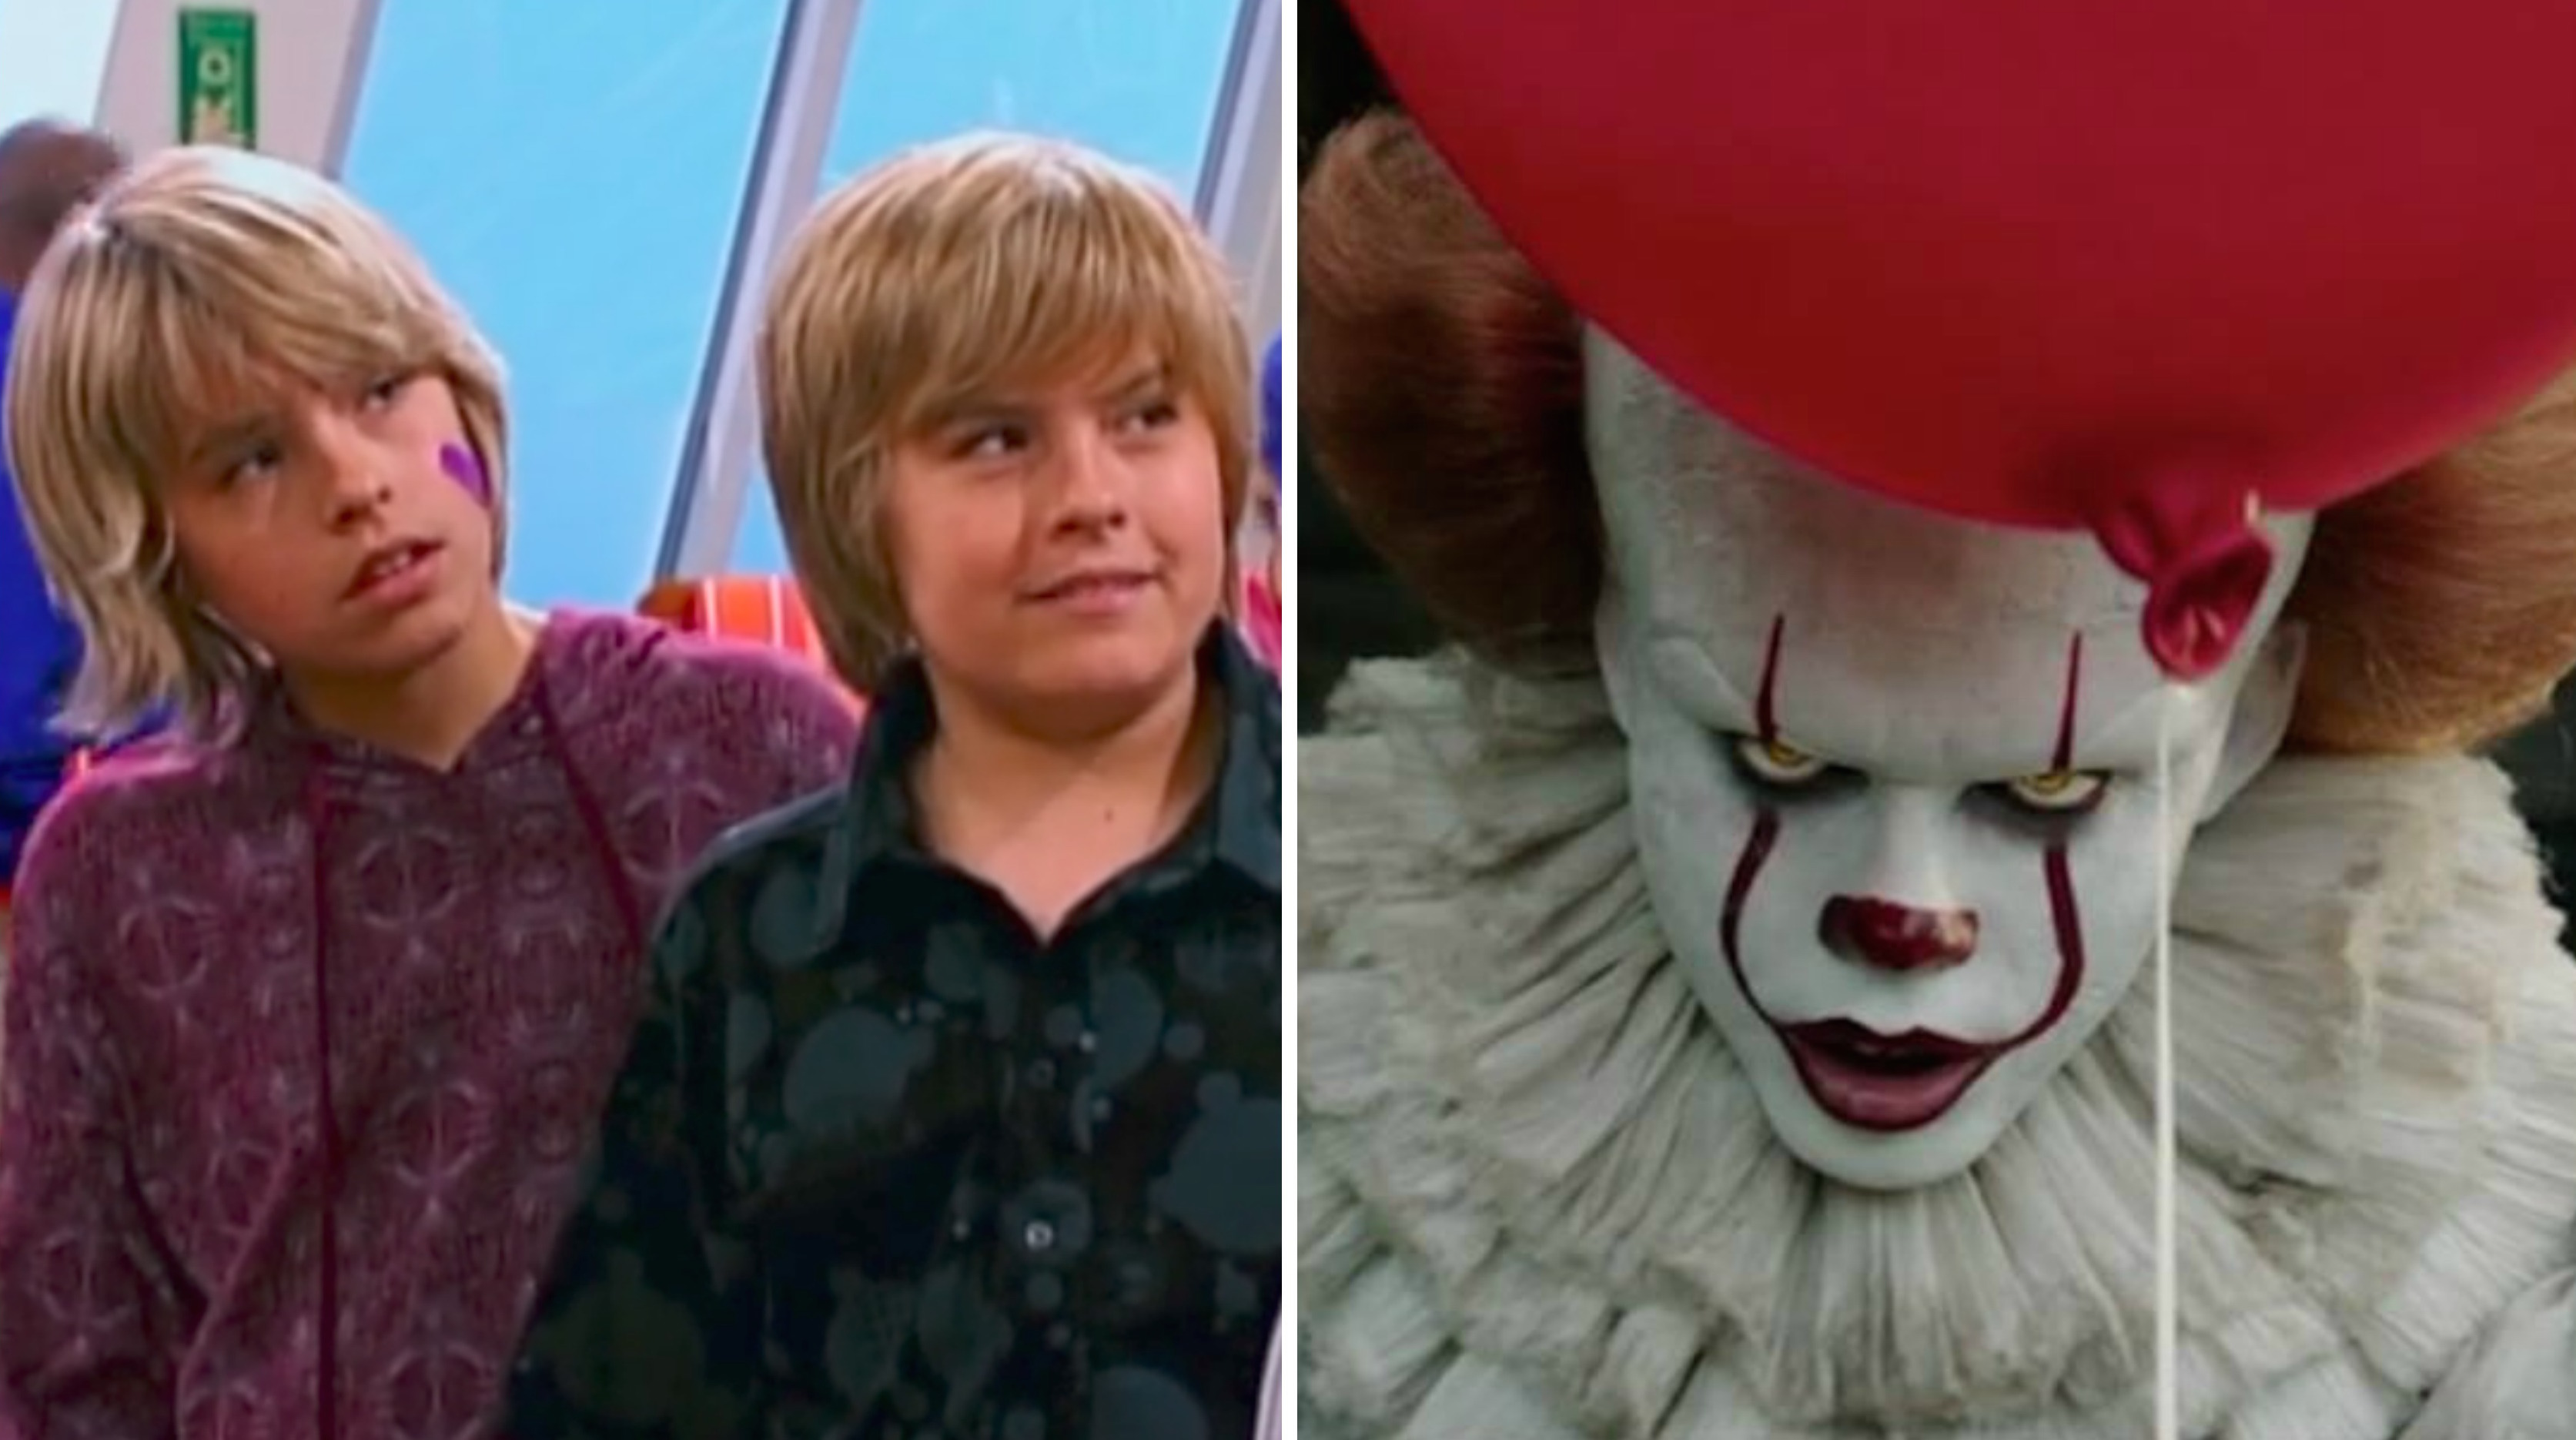 The Suite Life On Deck And The New It Movie Share A Connection